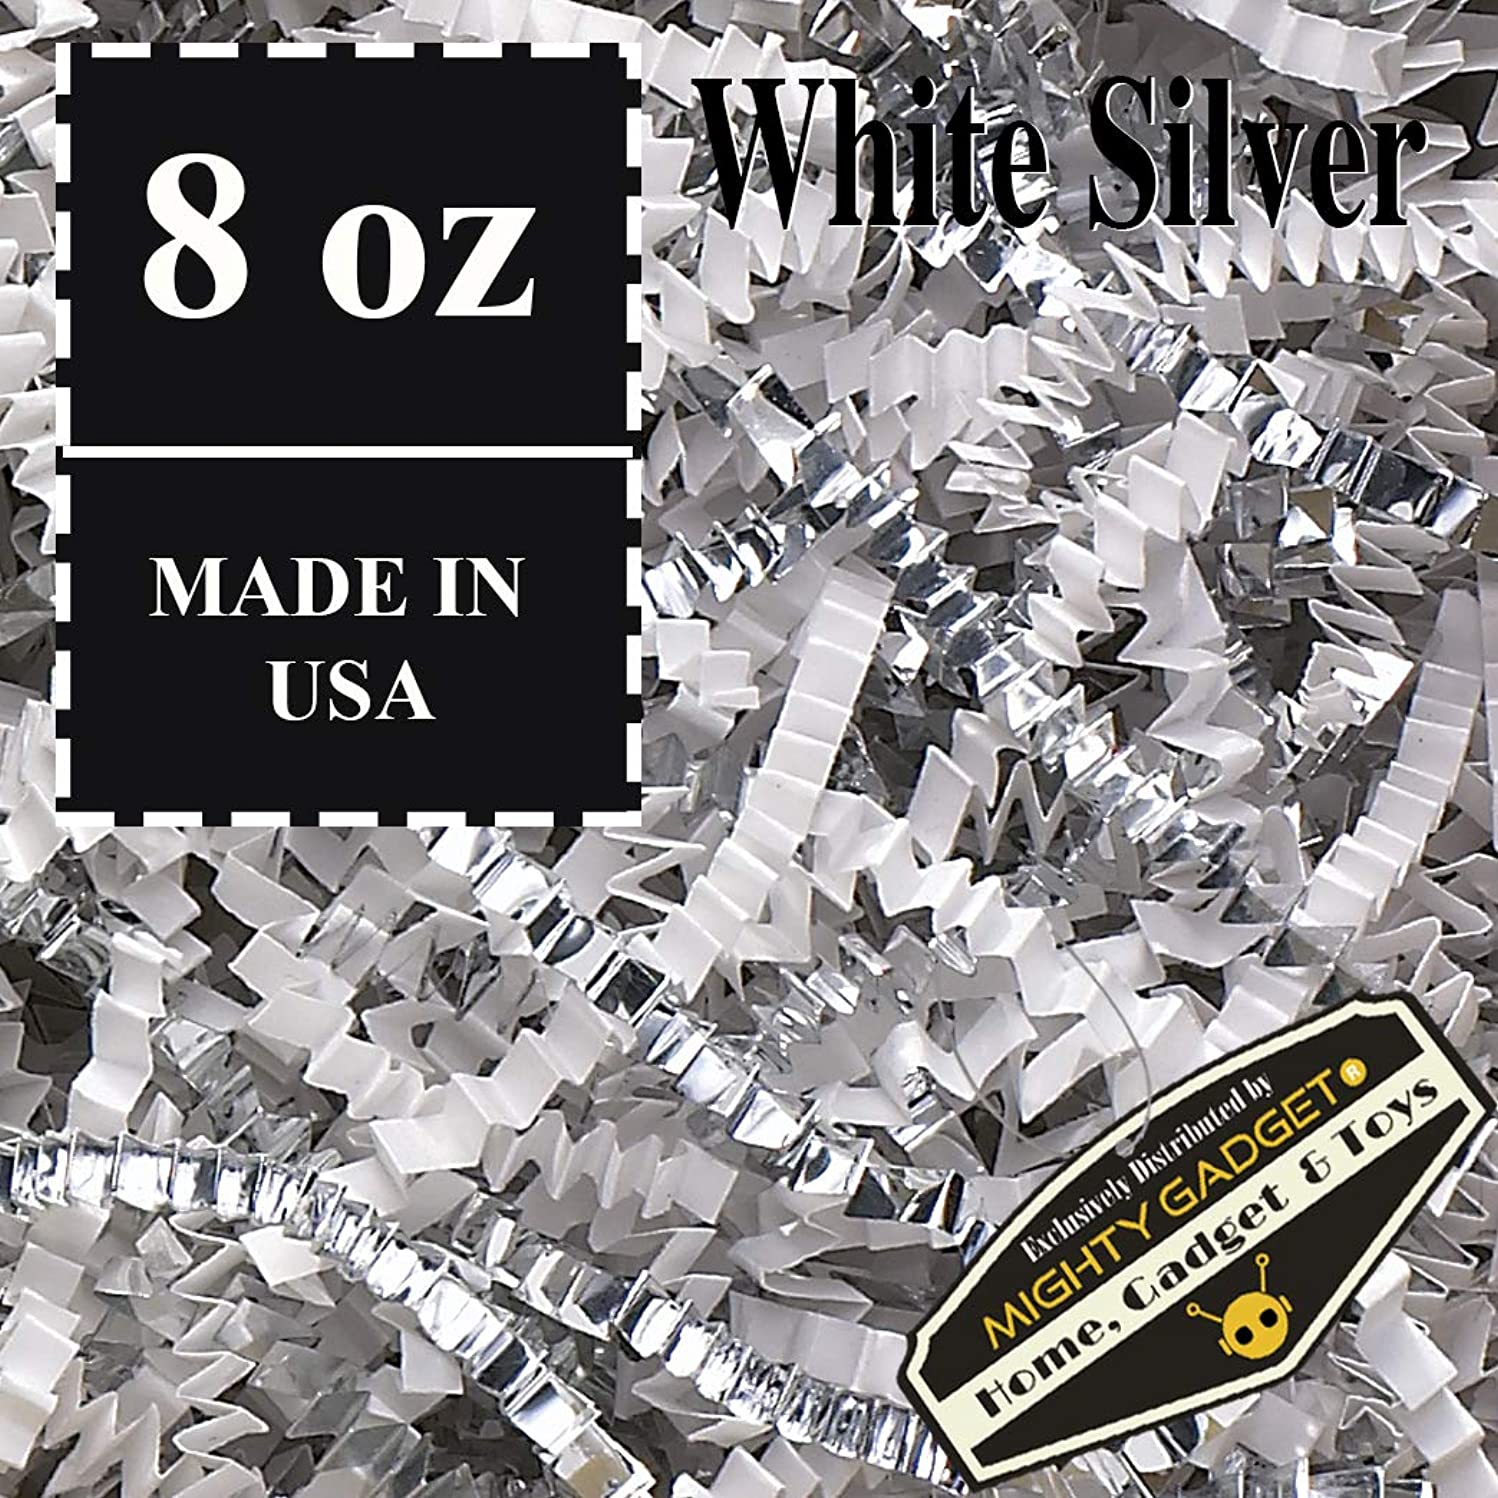 Mighty Gadget (R) 1/2 LB Premium White Silver Metallic Mix Crinkle Cut Paper Shred Filler for Gift Wrapping & Basket Filling